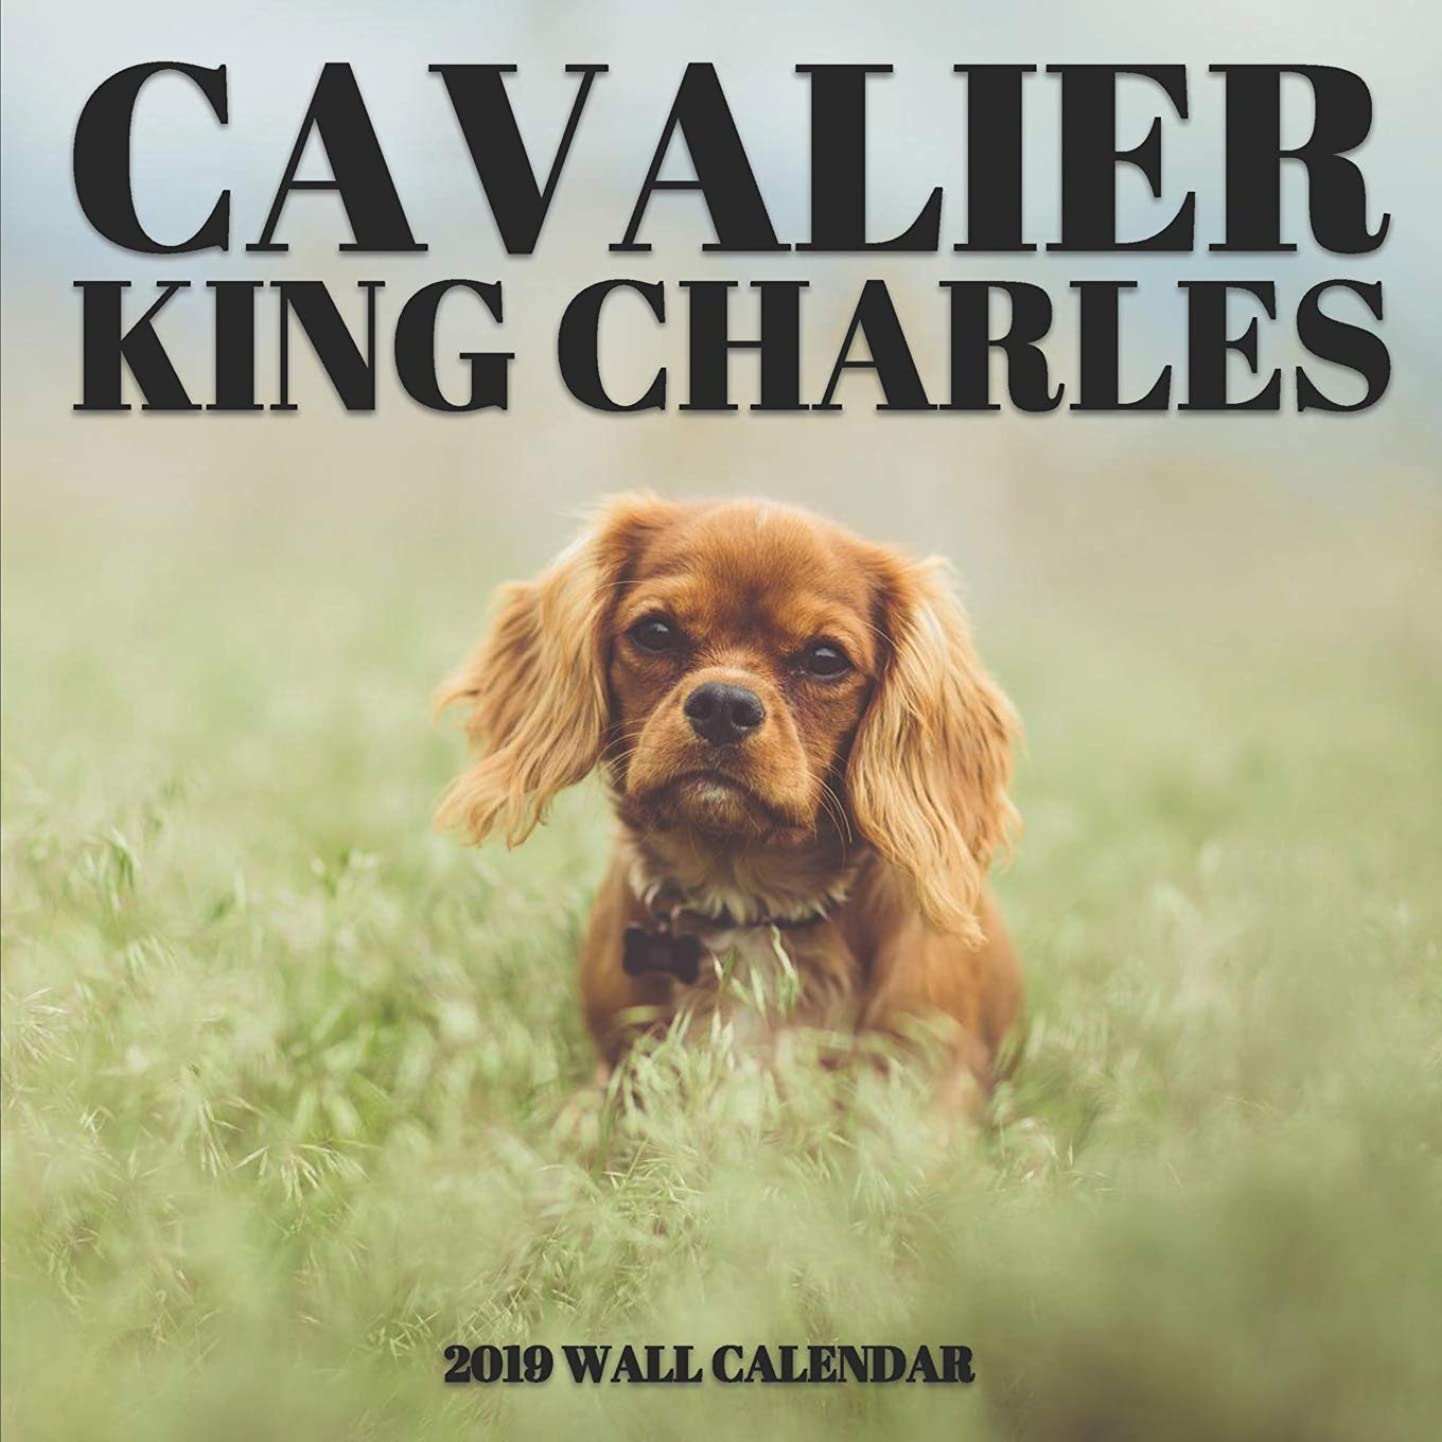 ウサギ冷蔵するオッズCavalier King Charles 2019 Wall Calendar: Mini Wall Calendar Dog Photography 12 Month Calendar Planner